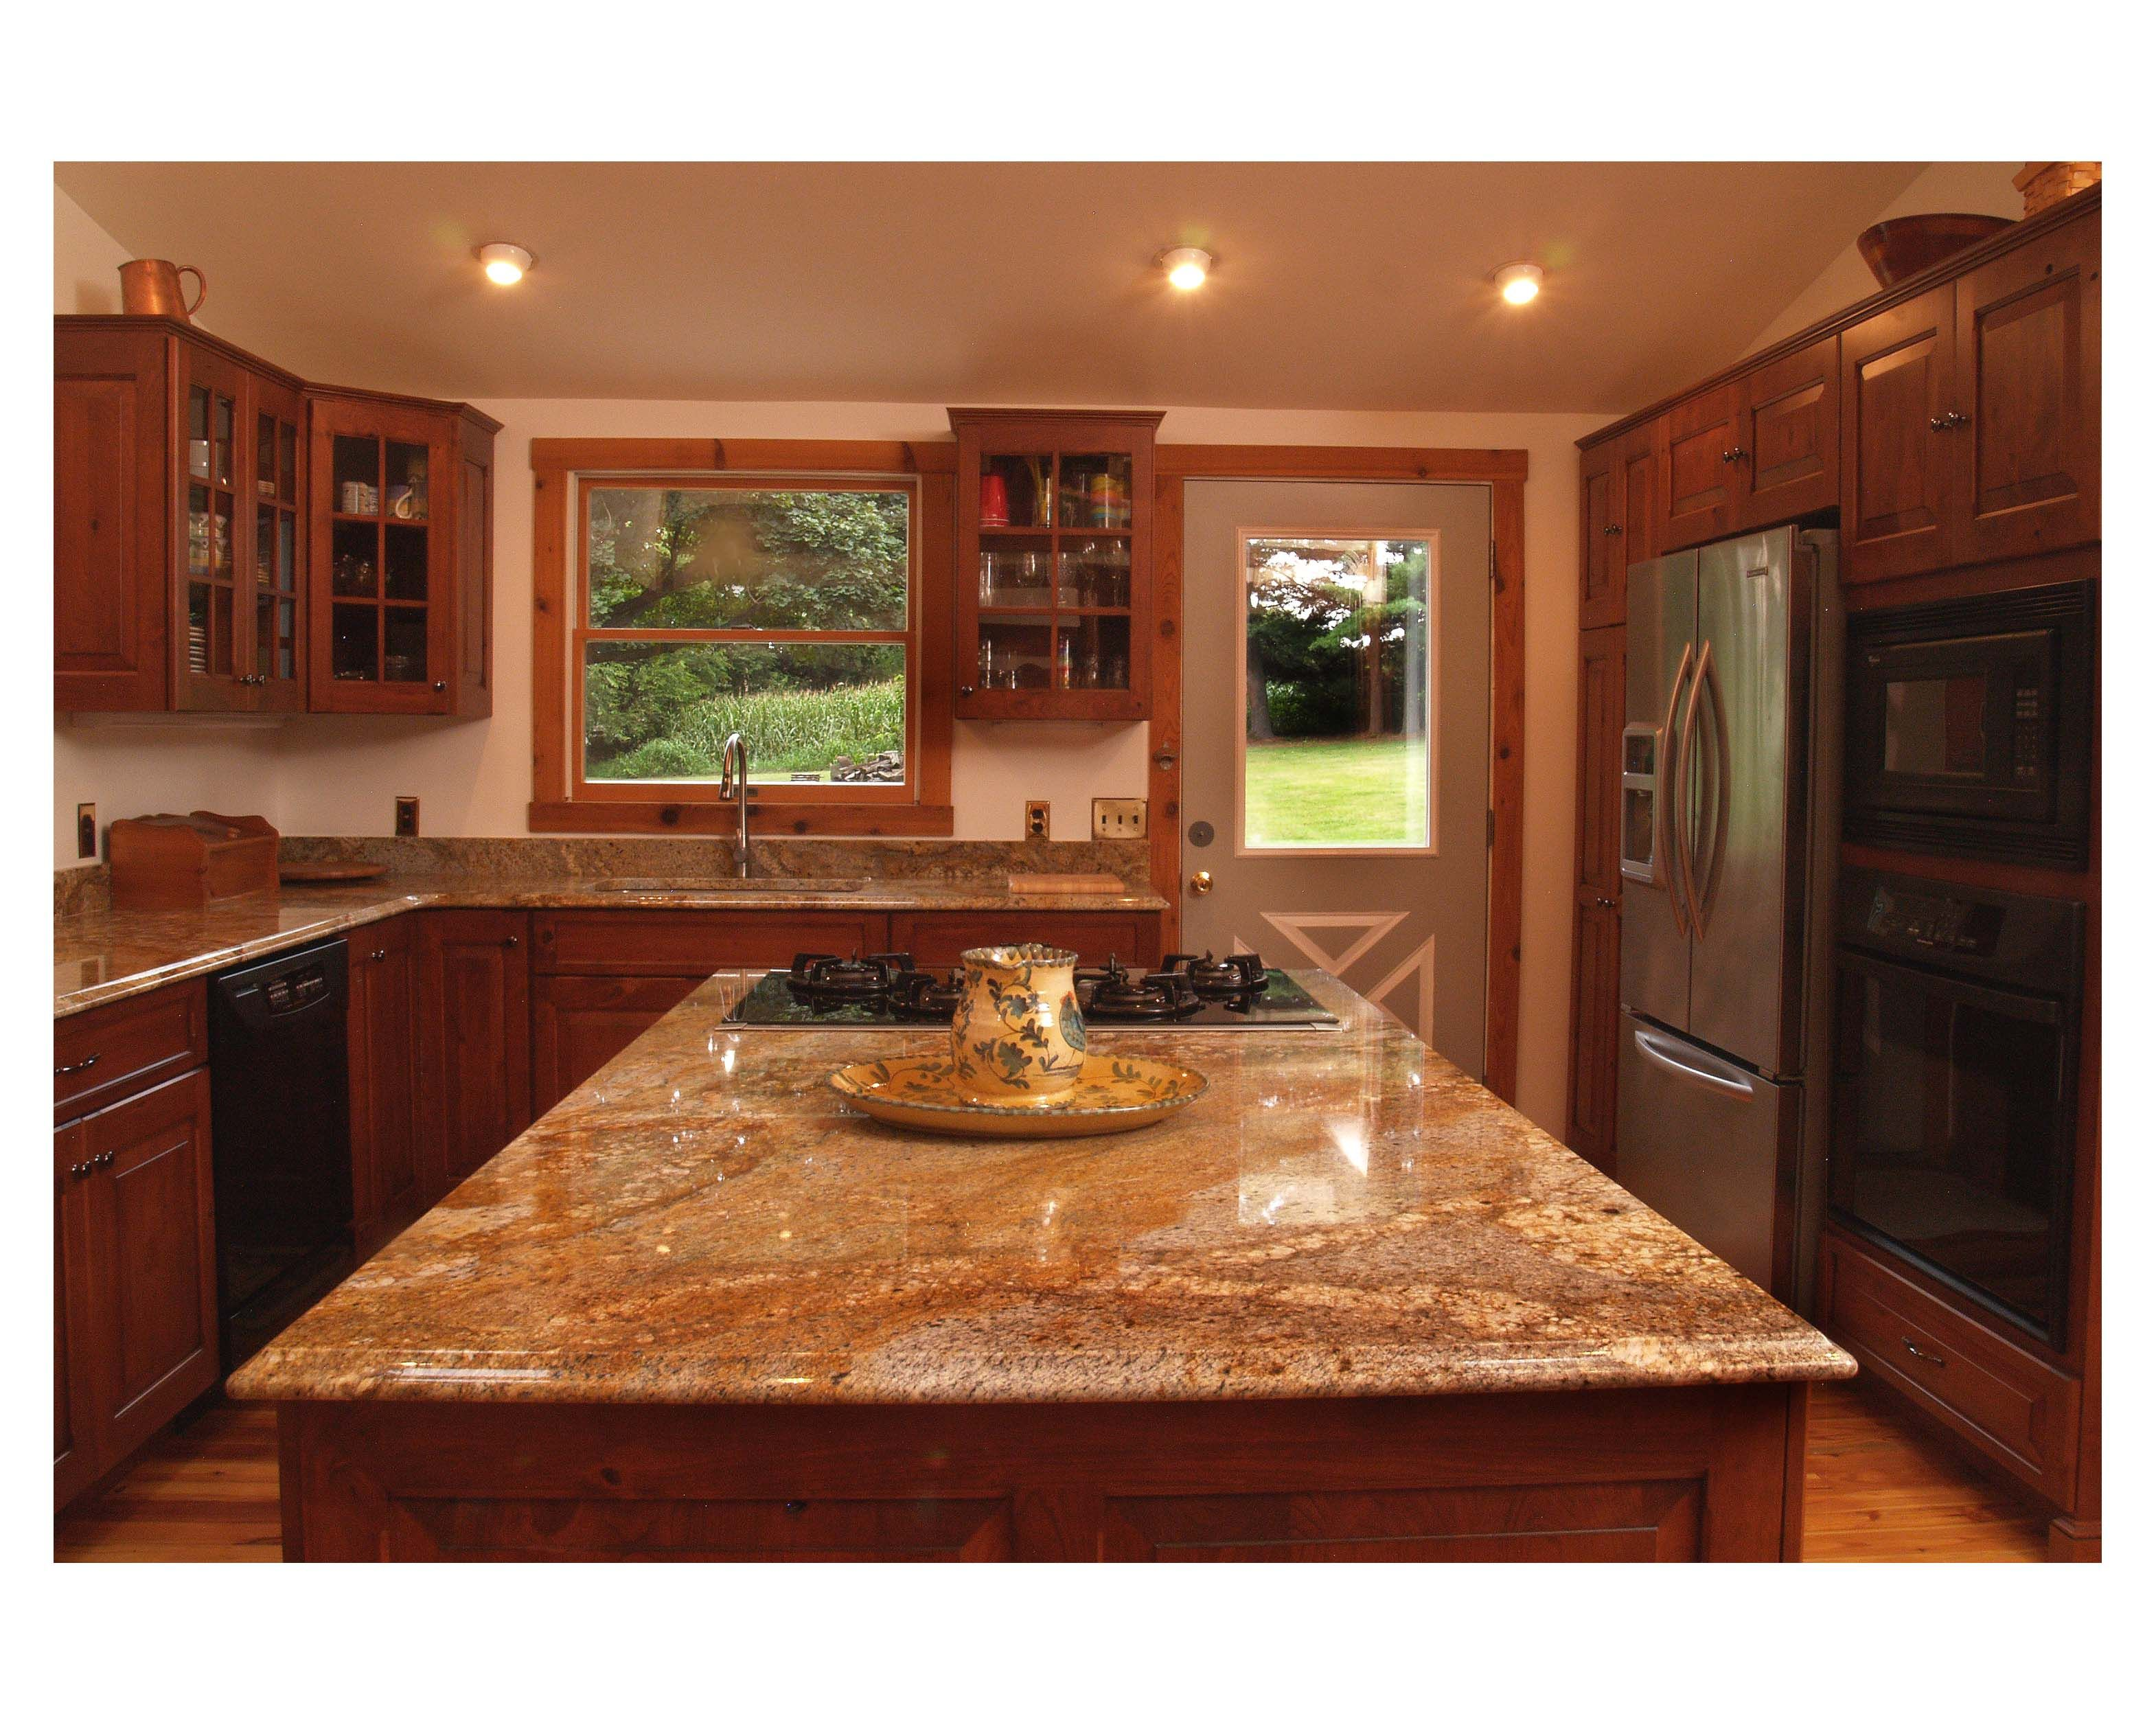 Log cabin style with modern comforts yes please cabinets for Log cabin kitchen countertops